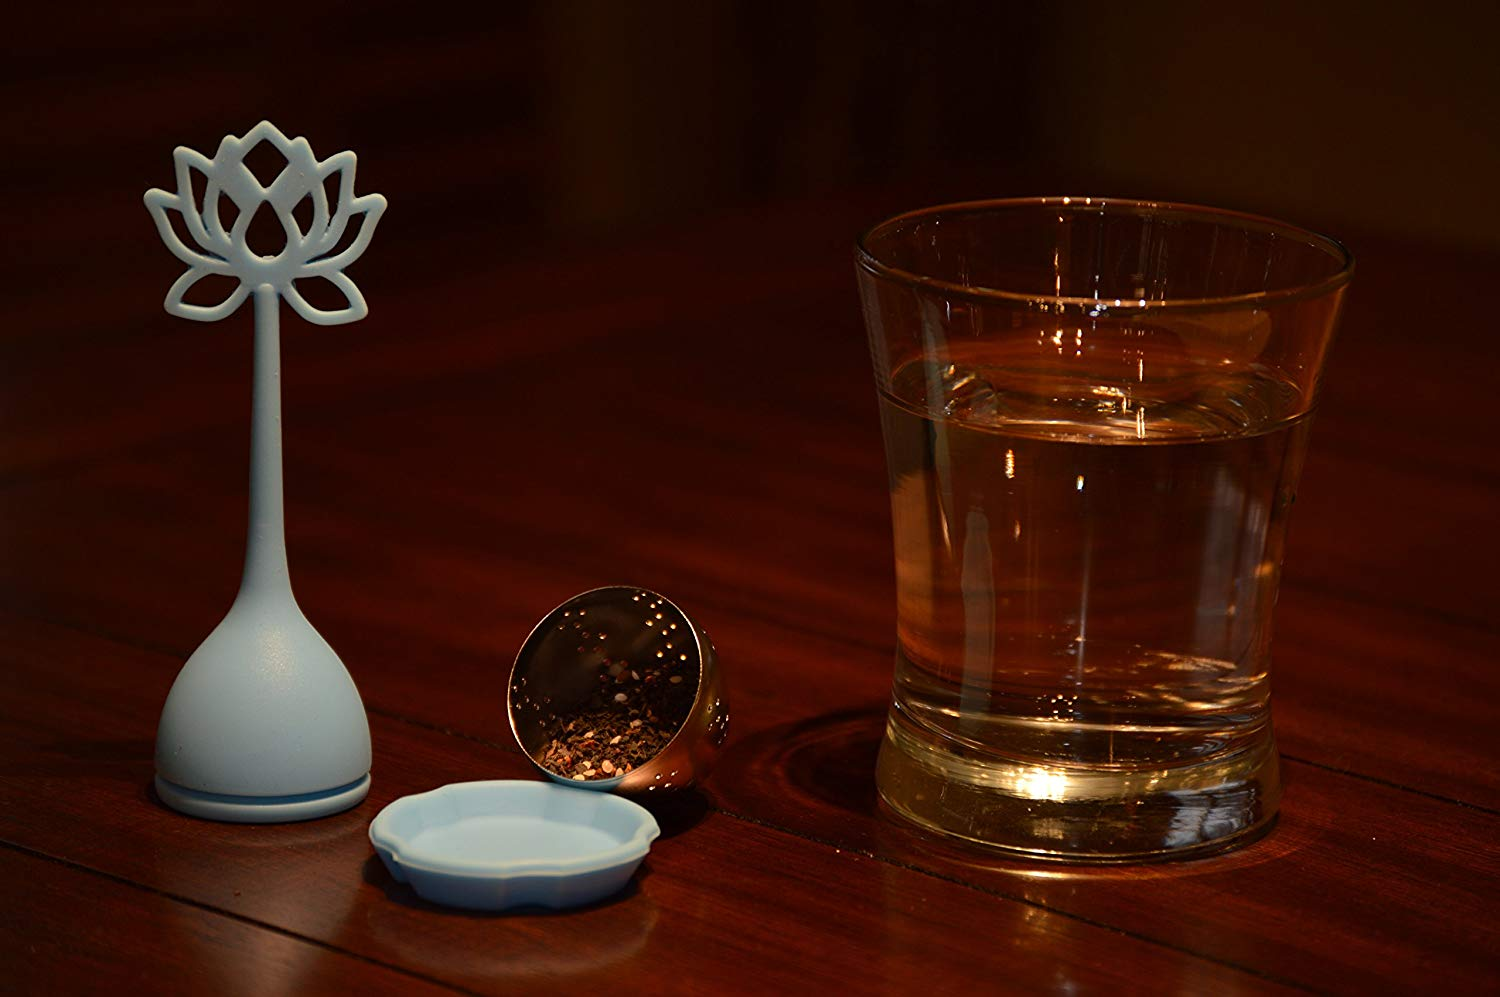 Flower Power Tea Infuser-for Loose Leaf Teas-silicone Top and Silicone Base (Blue)